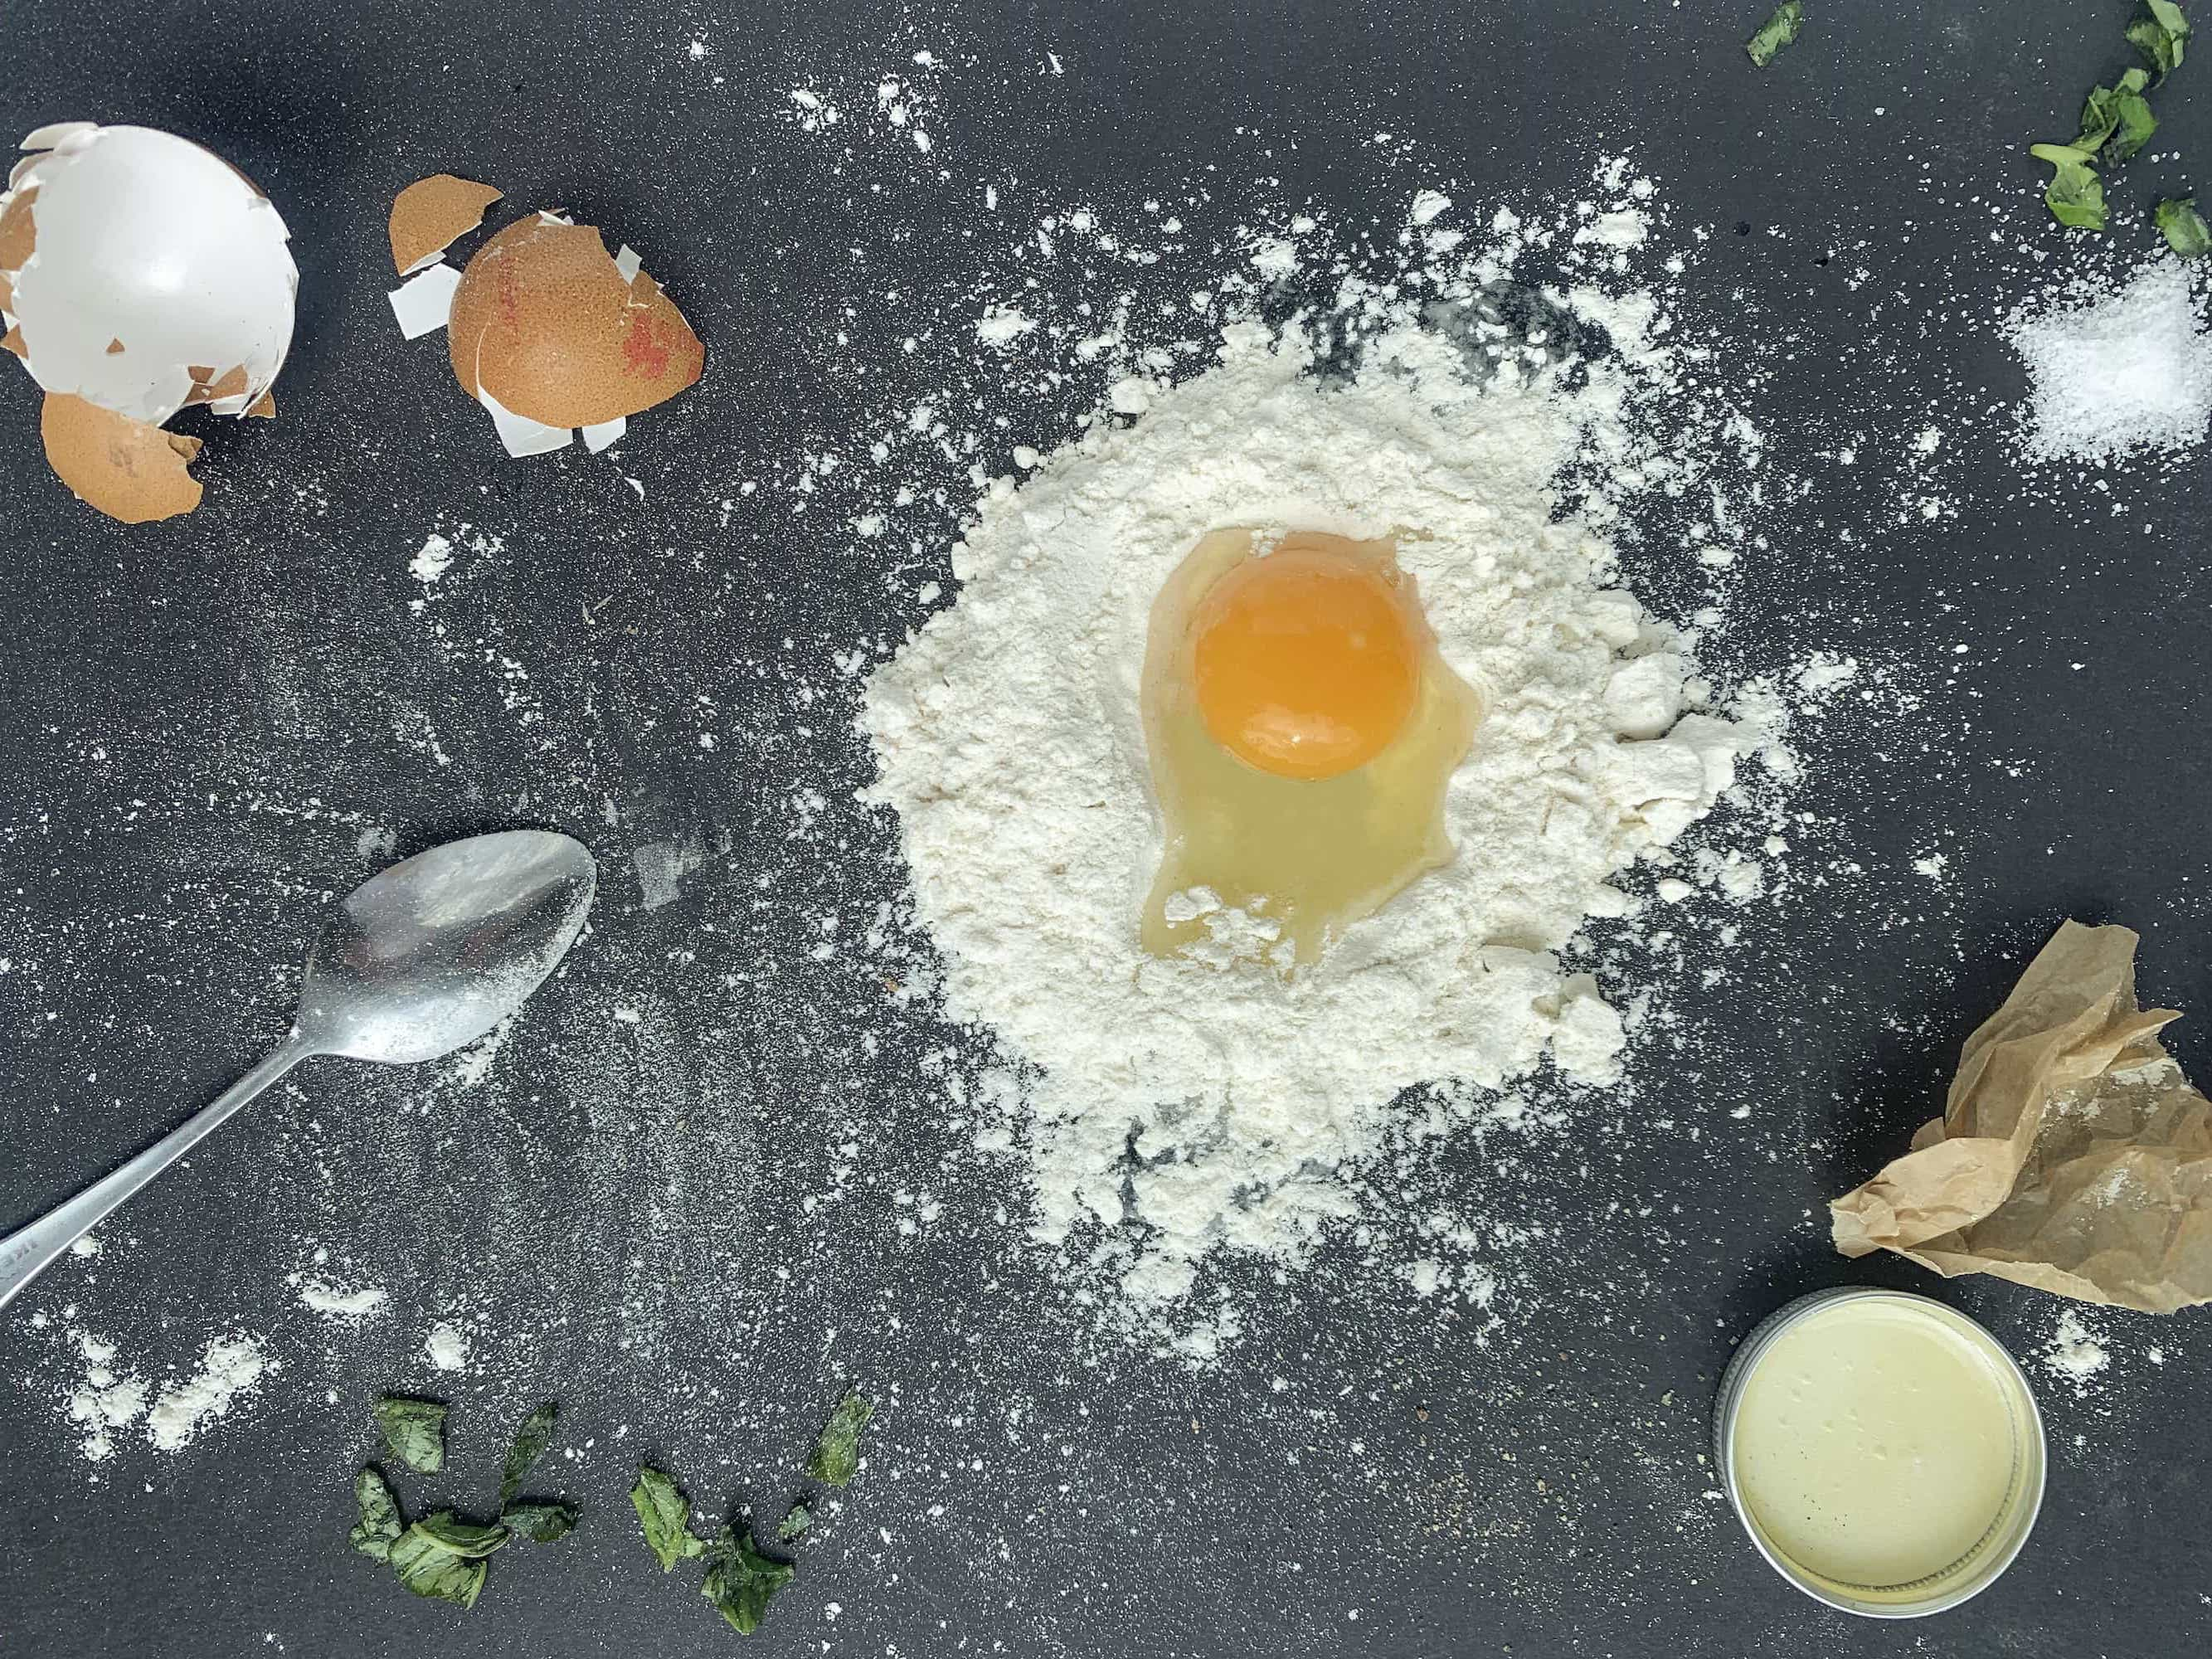 Table-with-cracked-egg-flour-and-spoon